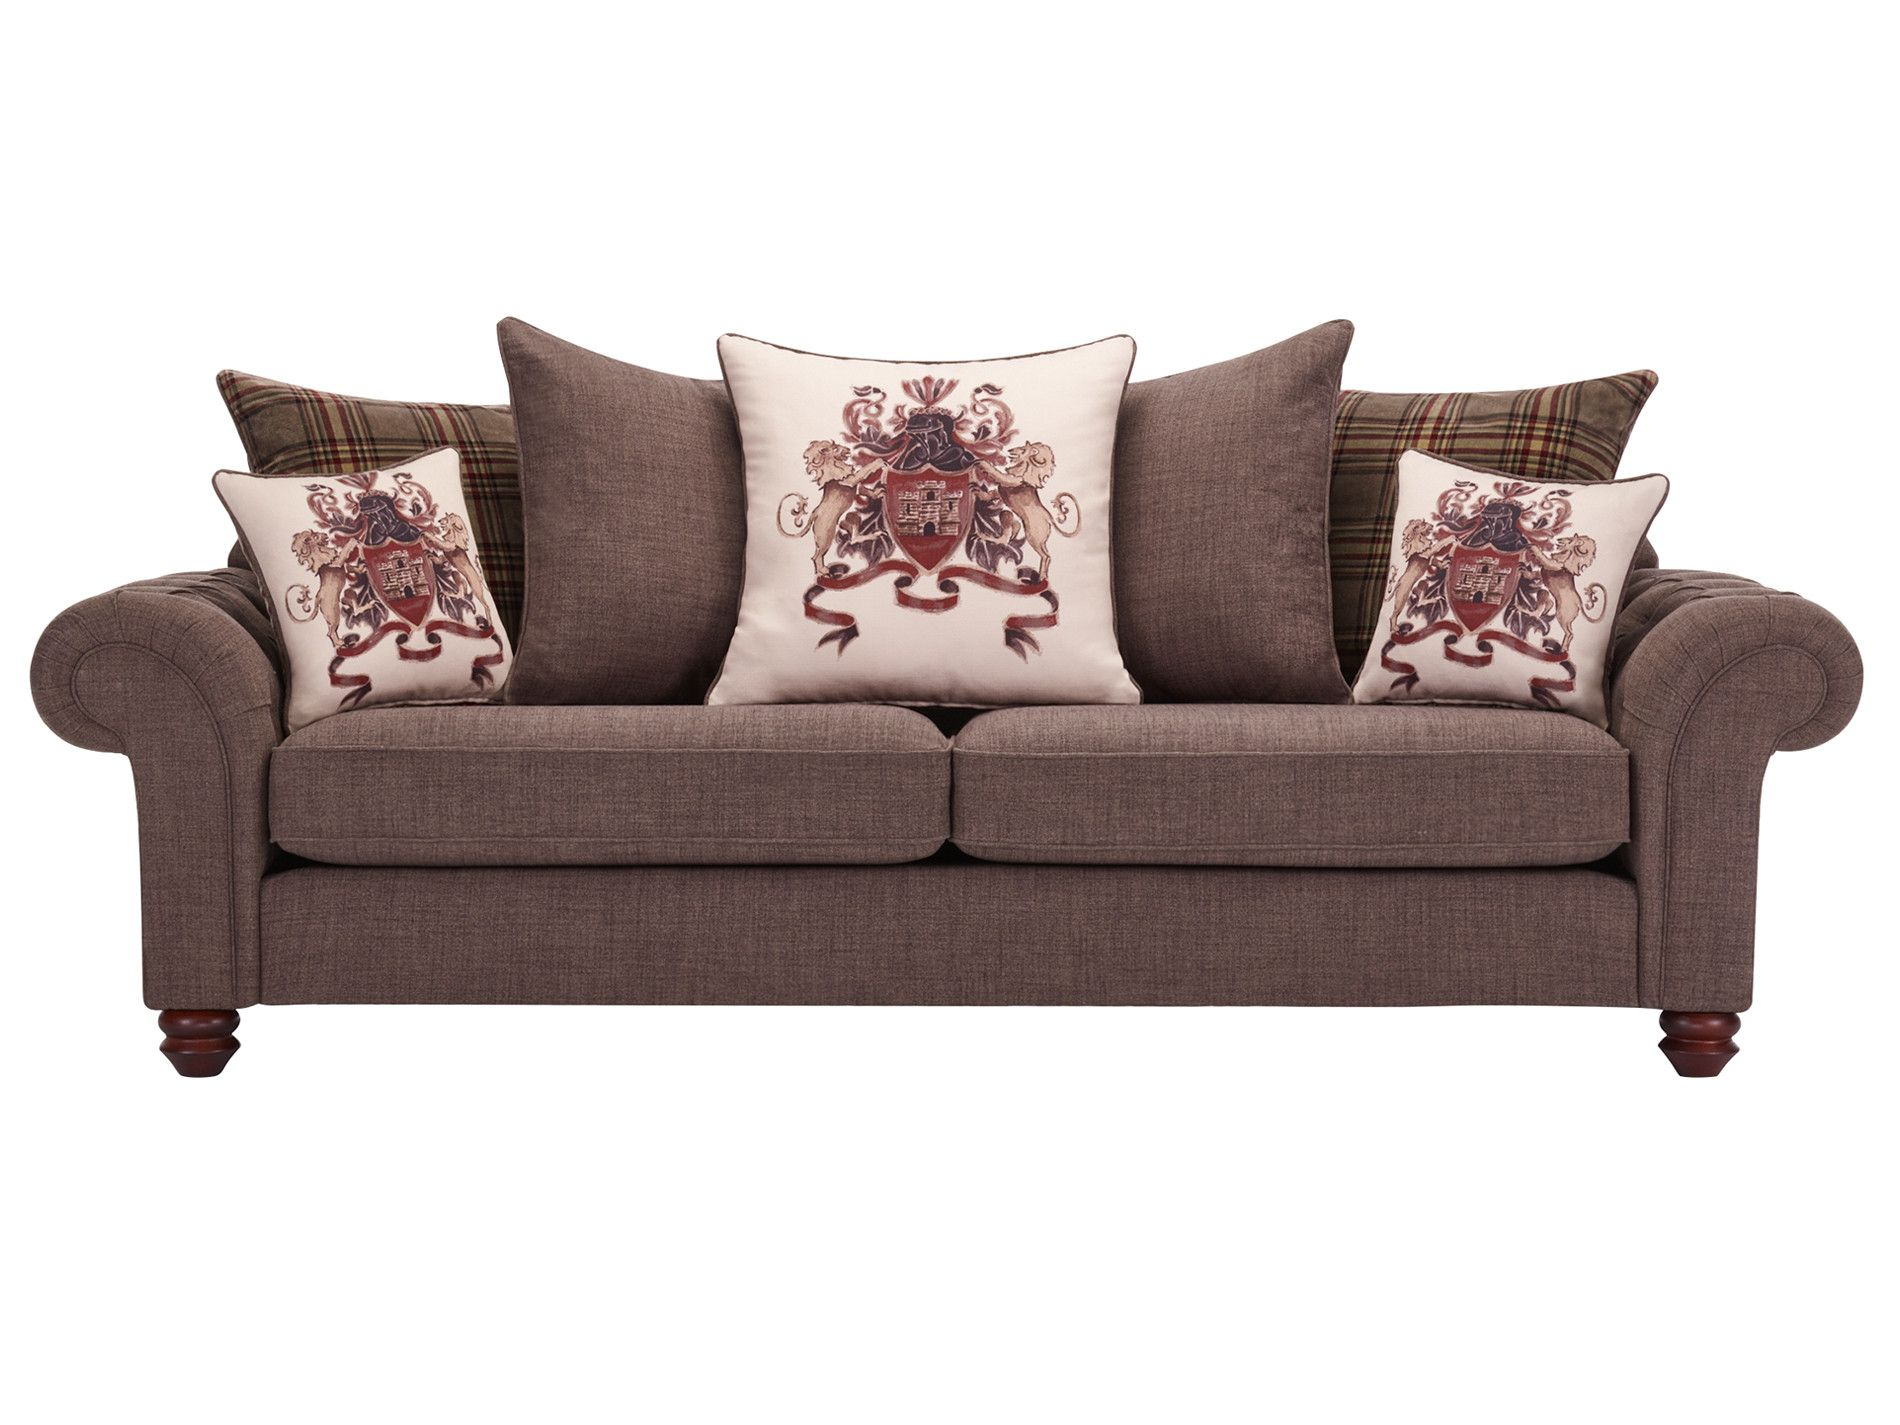 Giant Pillow Chair Sandringham 4 Seater Pillow Back Sofa In Brown With Beige